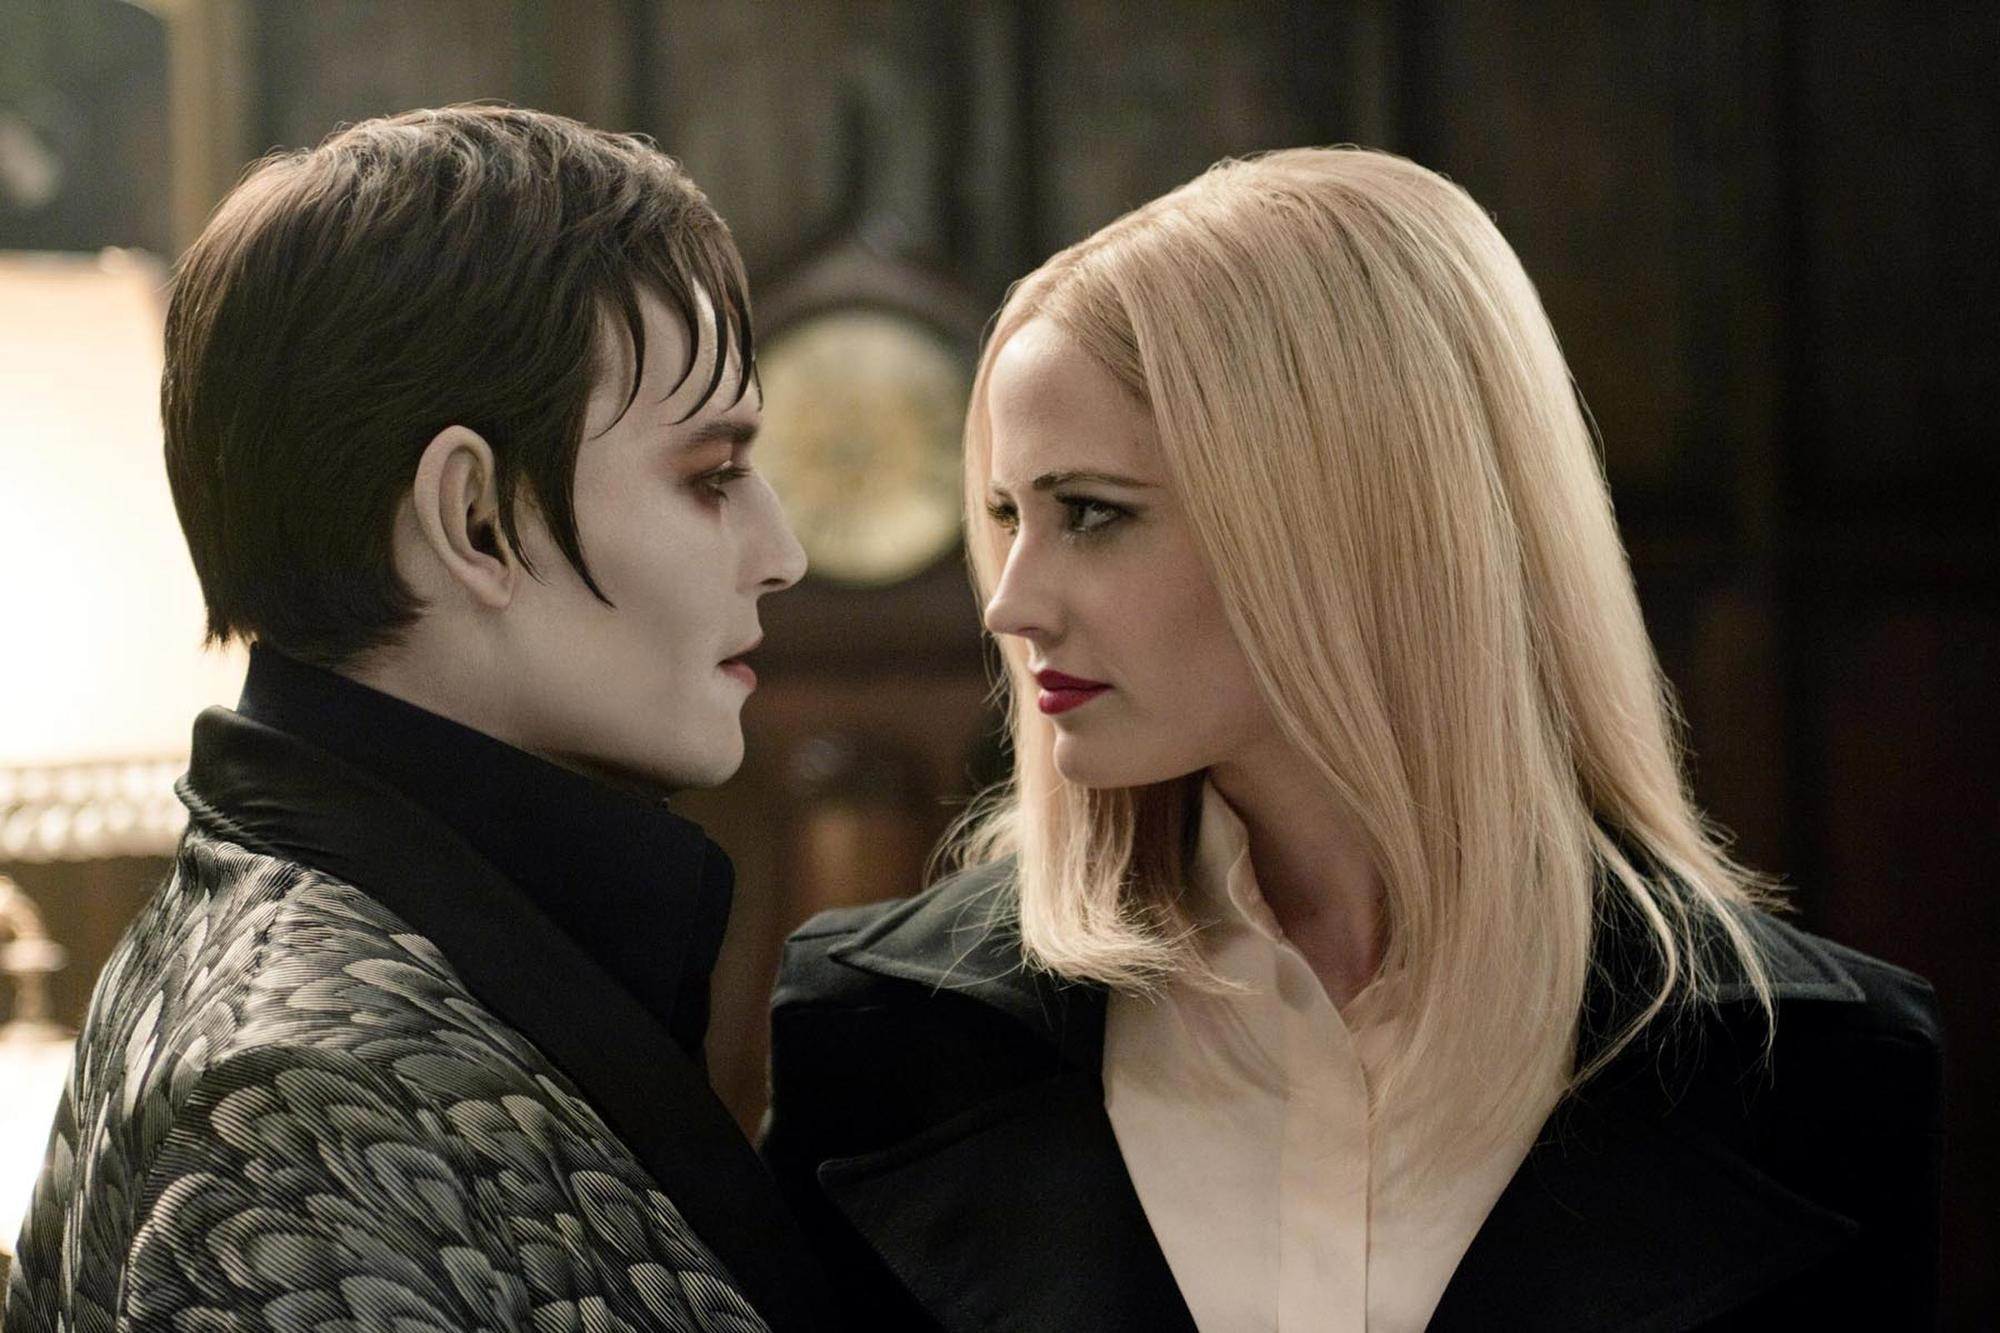 Barnabas Collins (Johnny Depp) and Angelique (Eva Green) in Dark Shadows (2012)